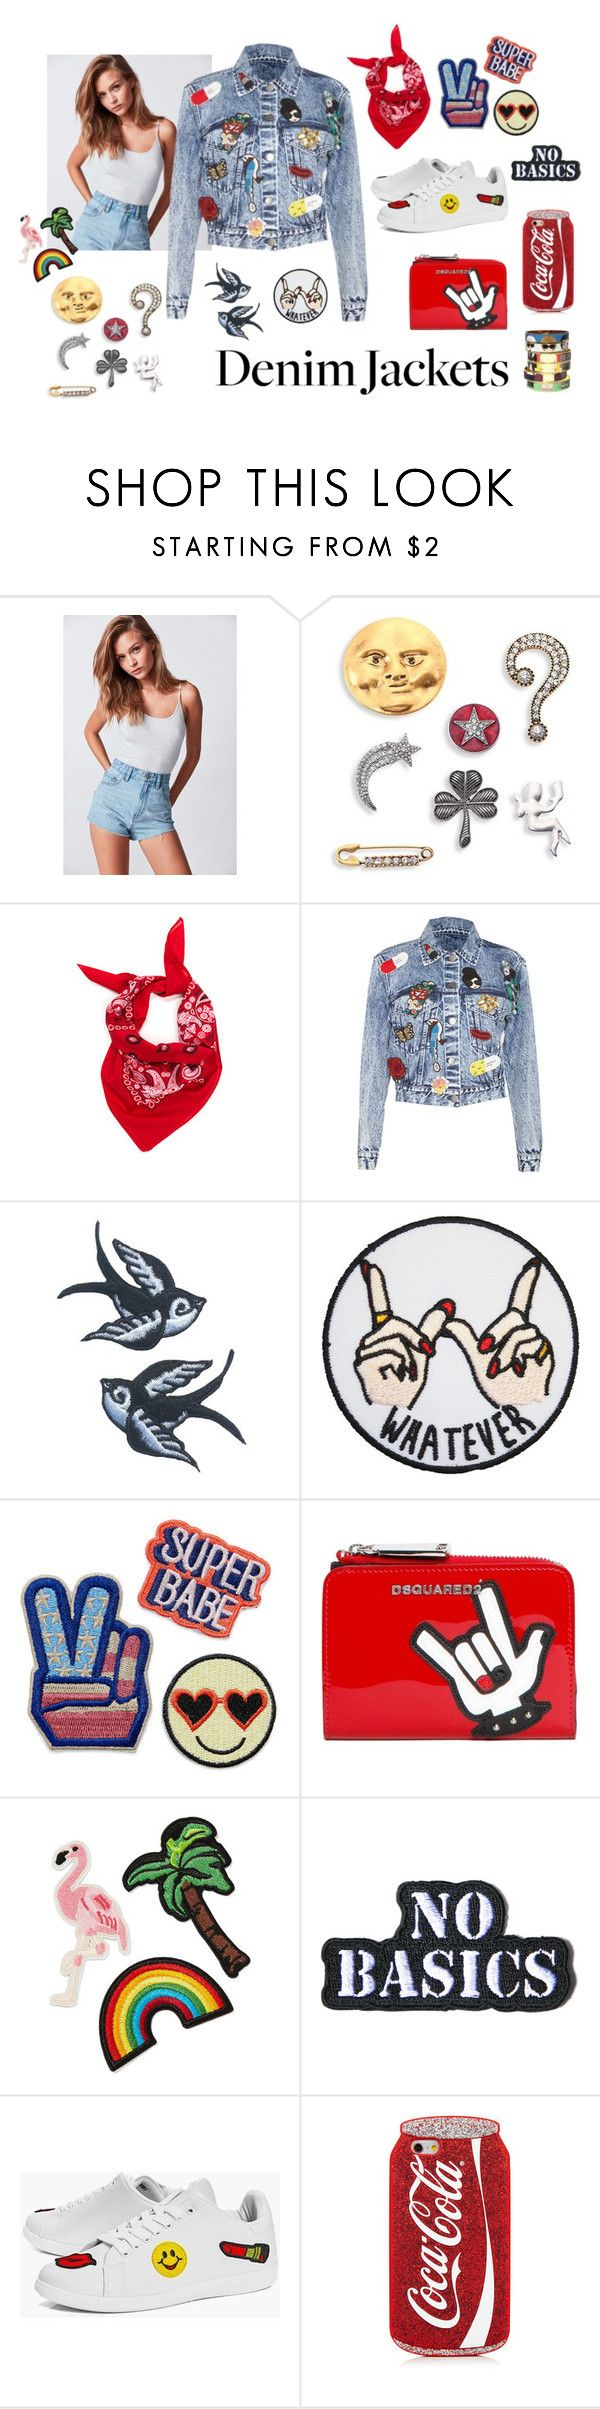 """Untitled #160"" by sakura1987 ❤ liked on Polyvore featuring BDG, Marc Jacobs, Alice + Olivia, Dsquared2, 3x1, Hollywood Mirror, Boohoo and Bijoux de Famille"